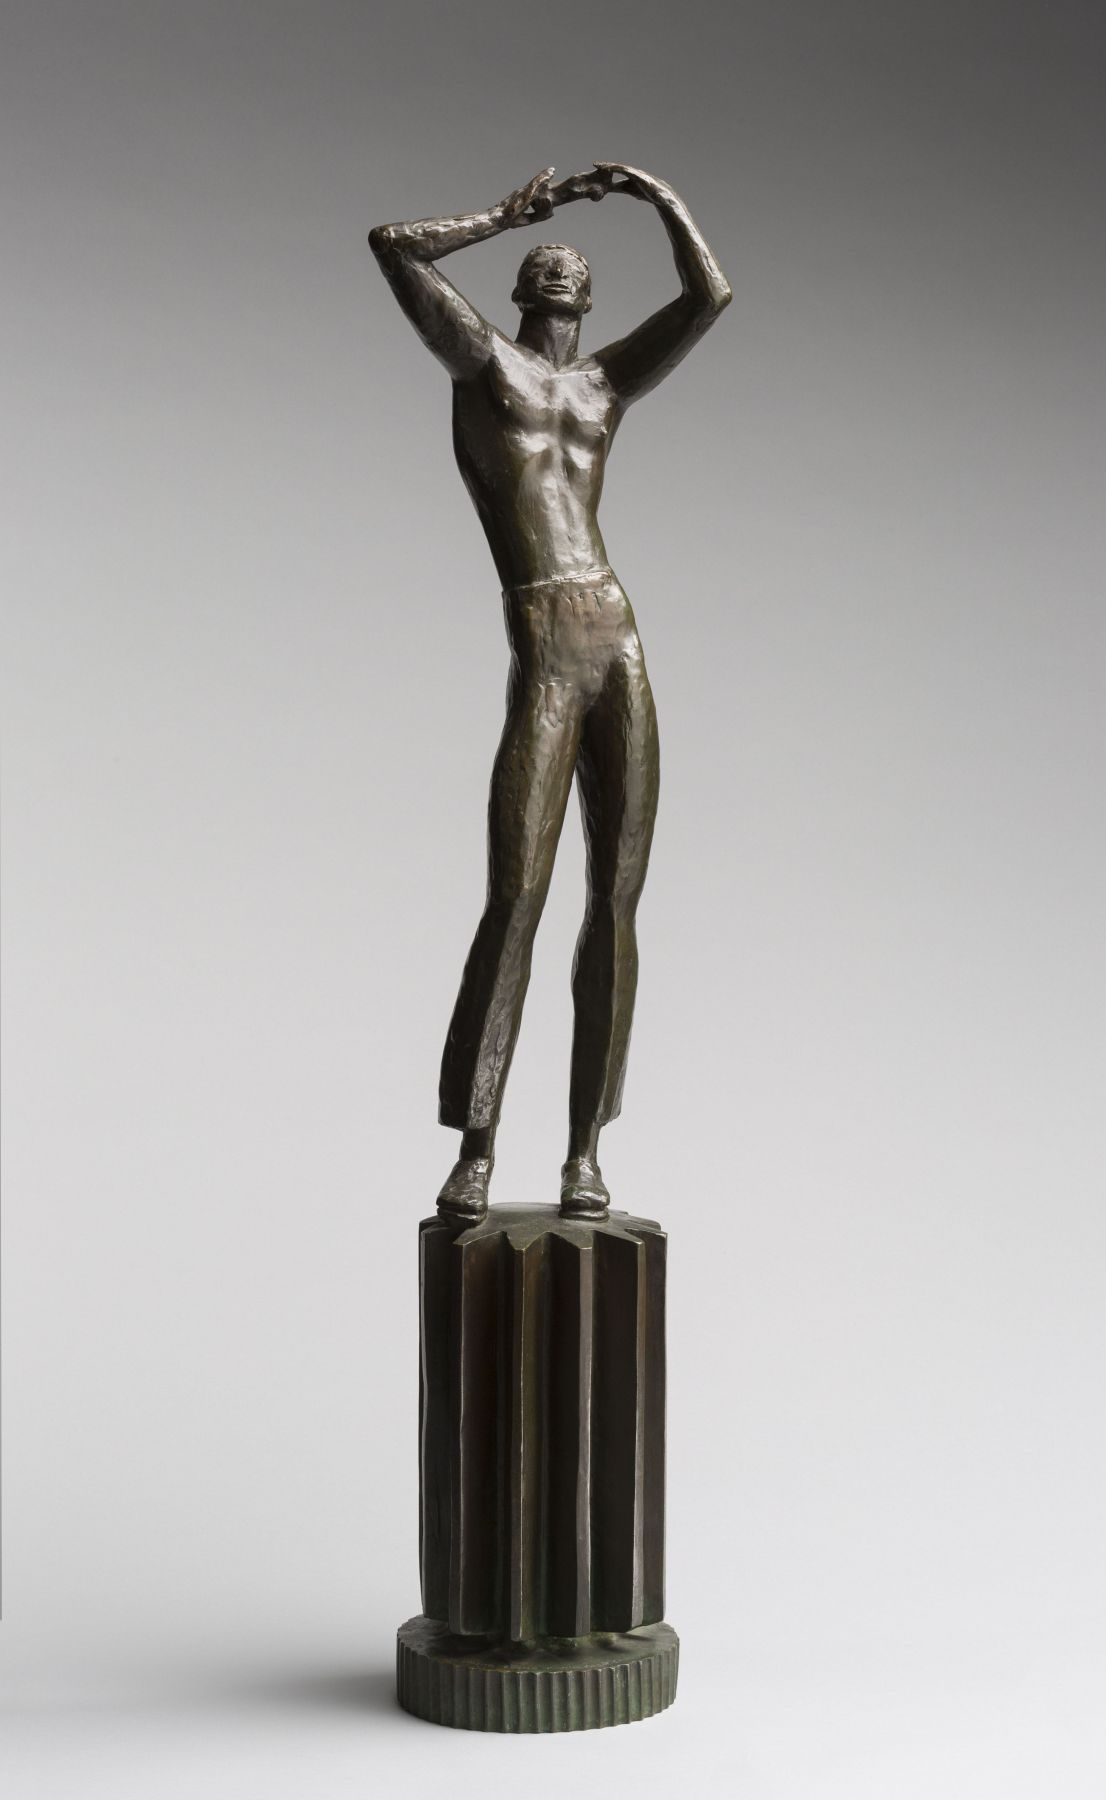 bronze sculpture of a man with arms raised over head by carl milles